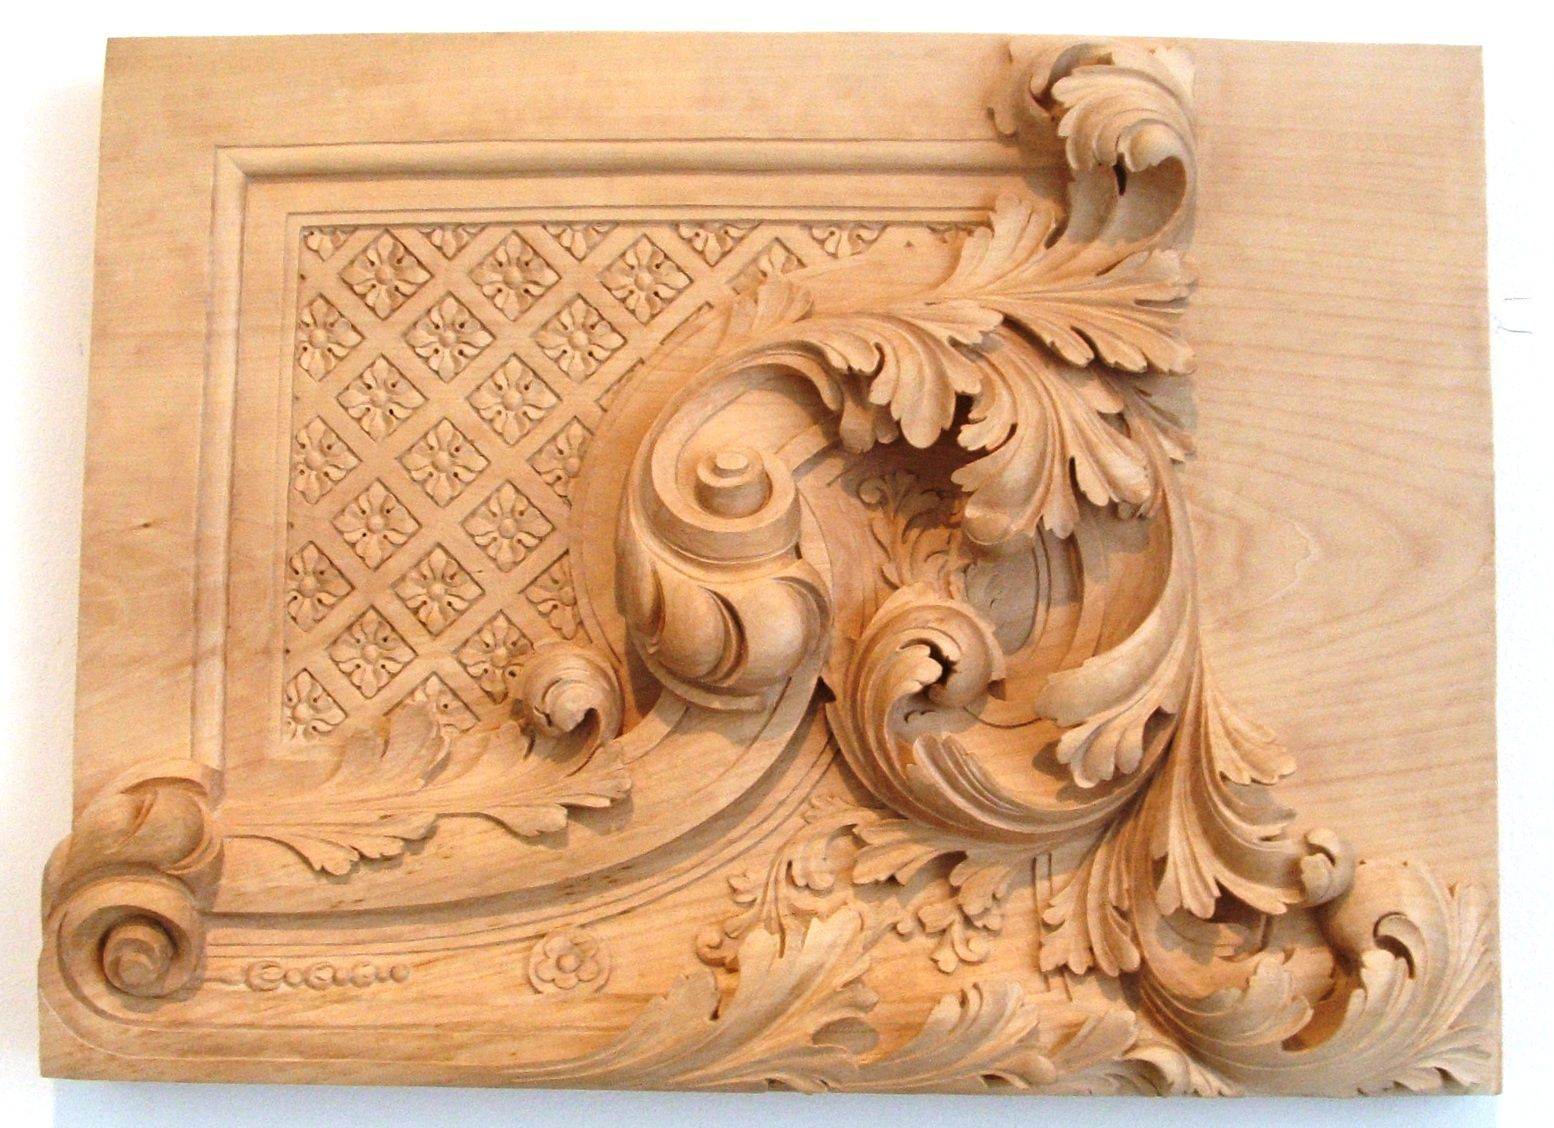 Simple Wood Carving Designson City And Guilds Logo